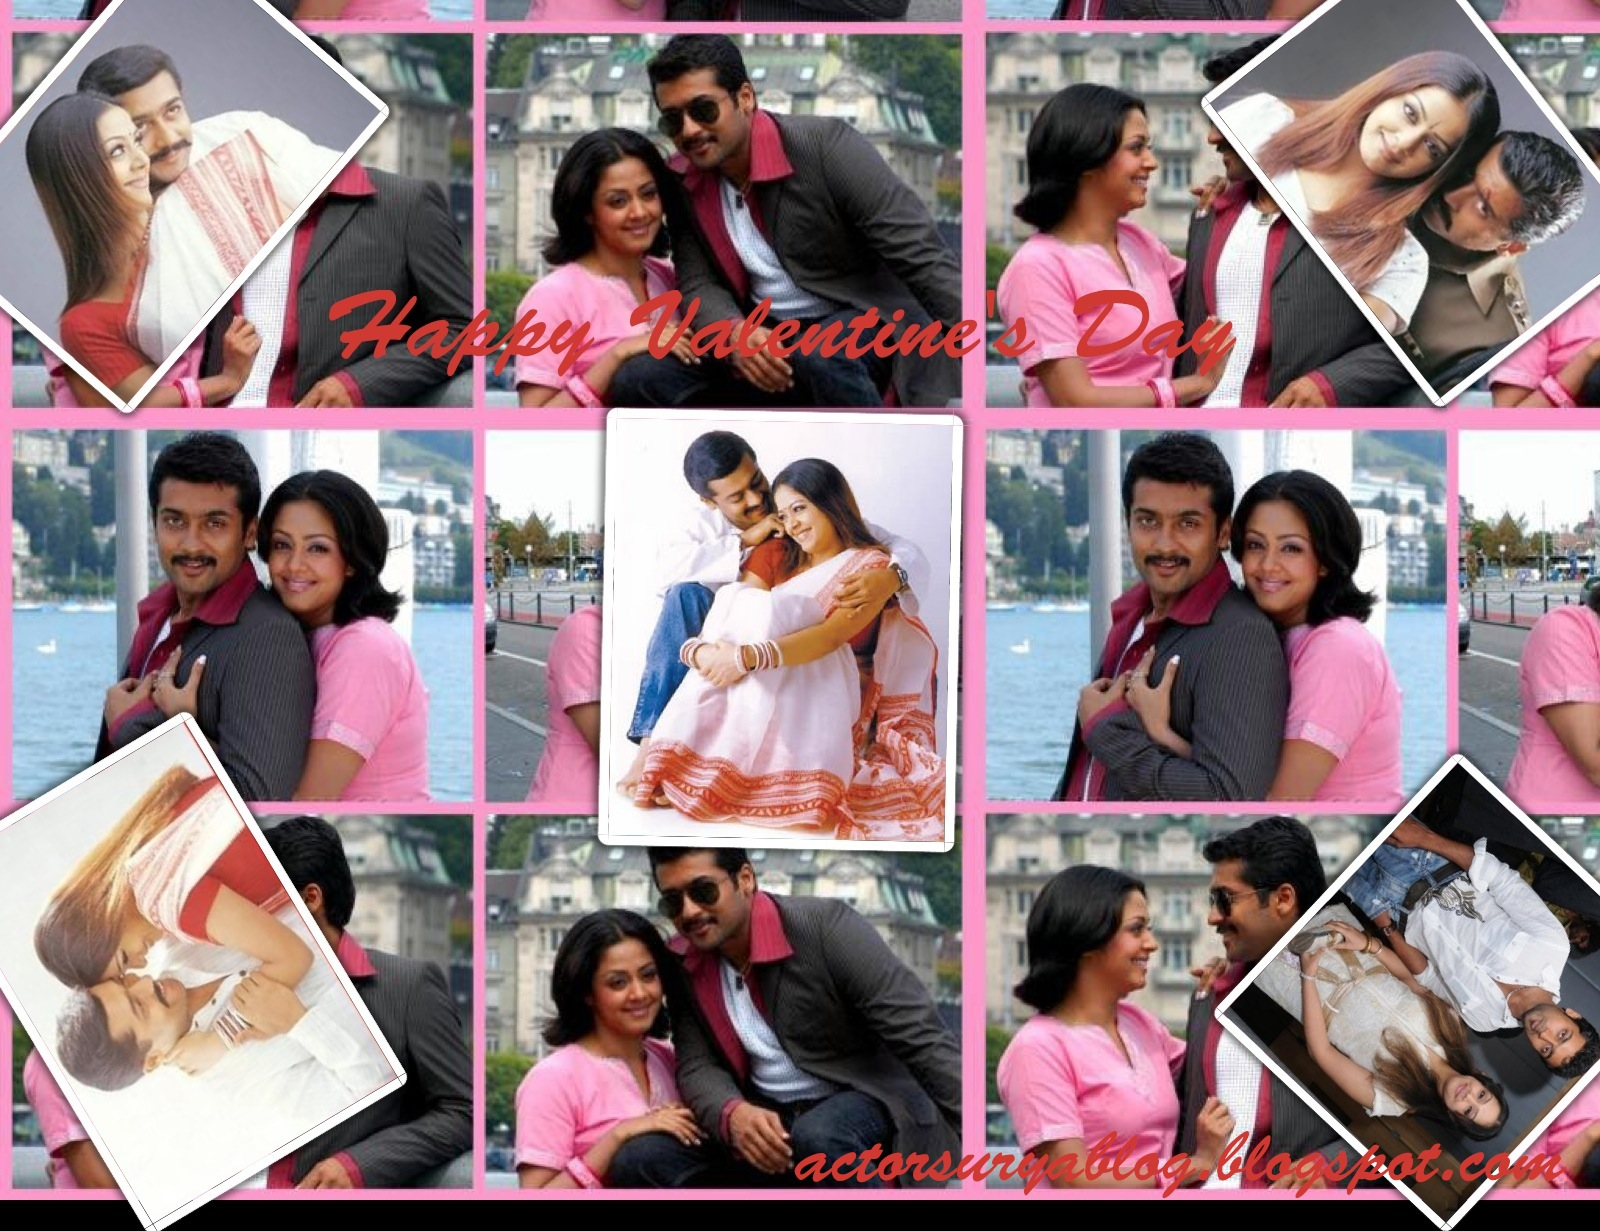 Happy valentines day actor surya blog happy valentines day to all surya fans thecheapjerseys Gallery